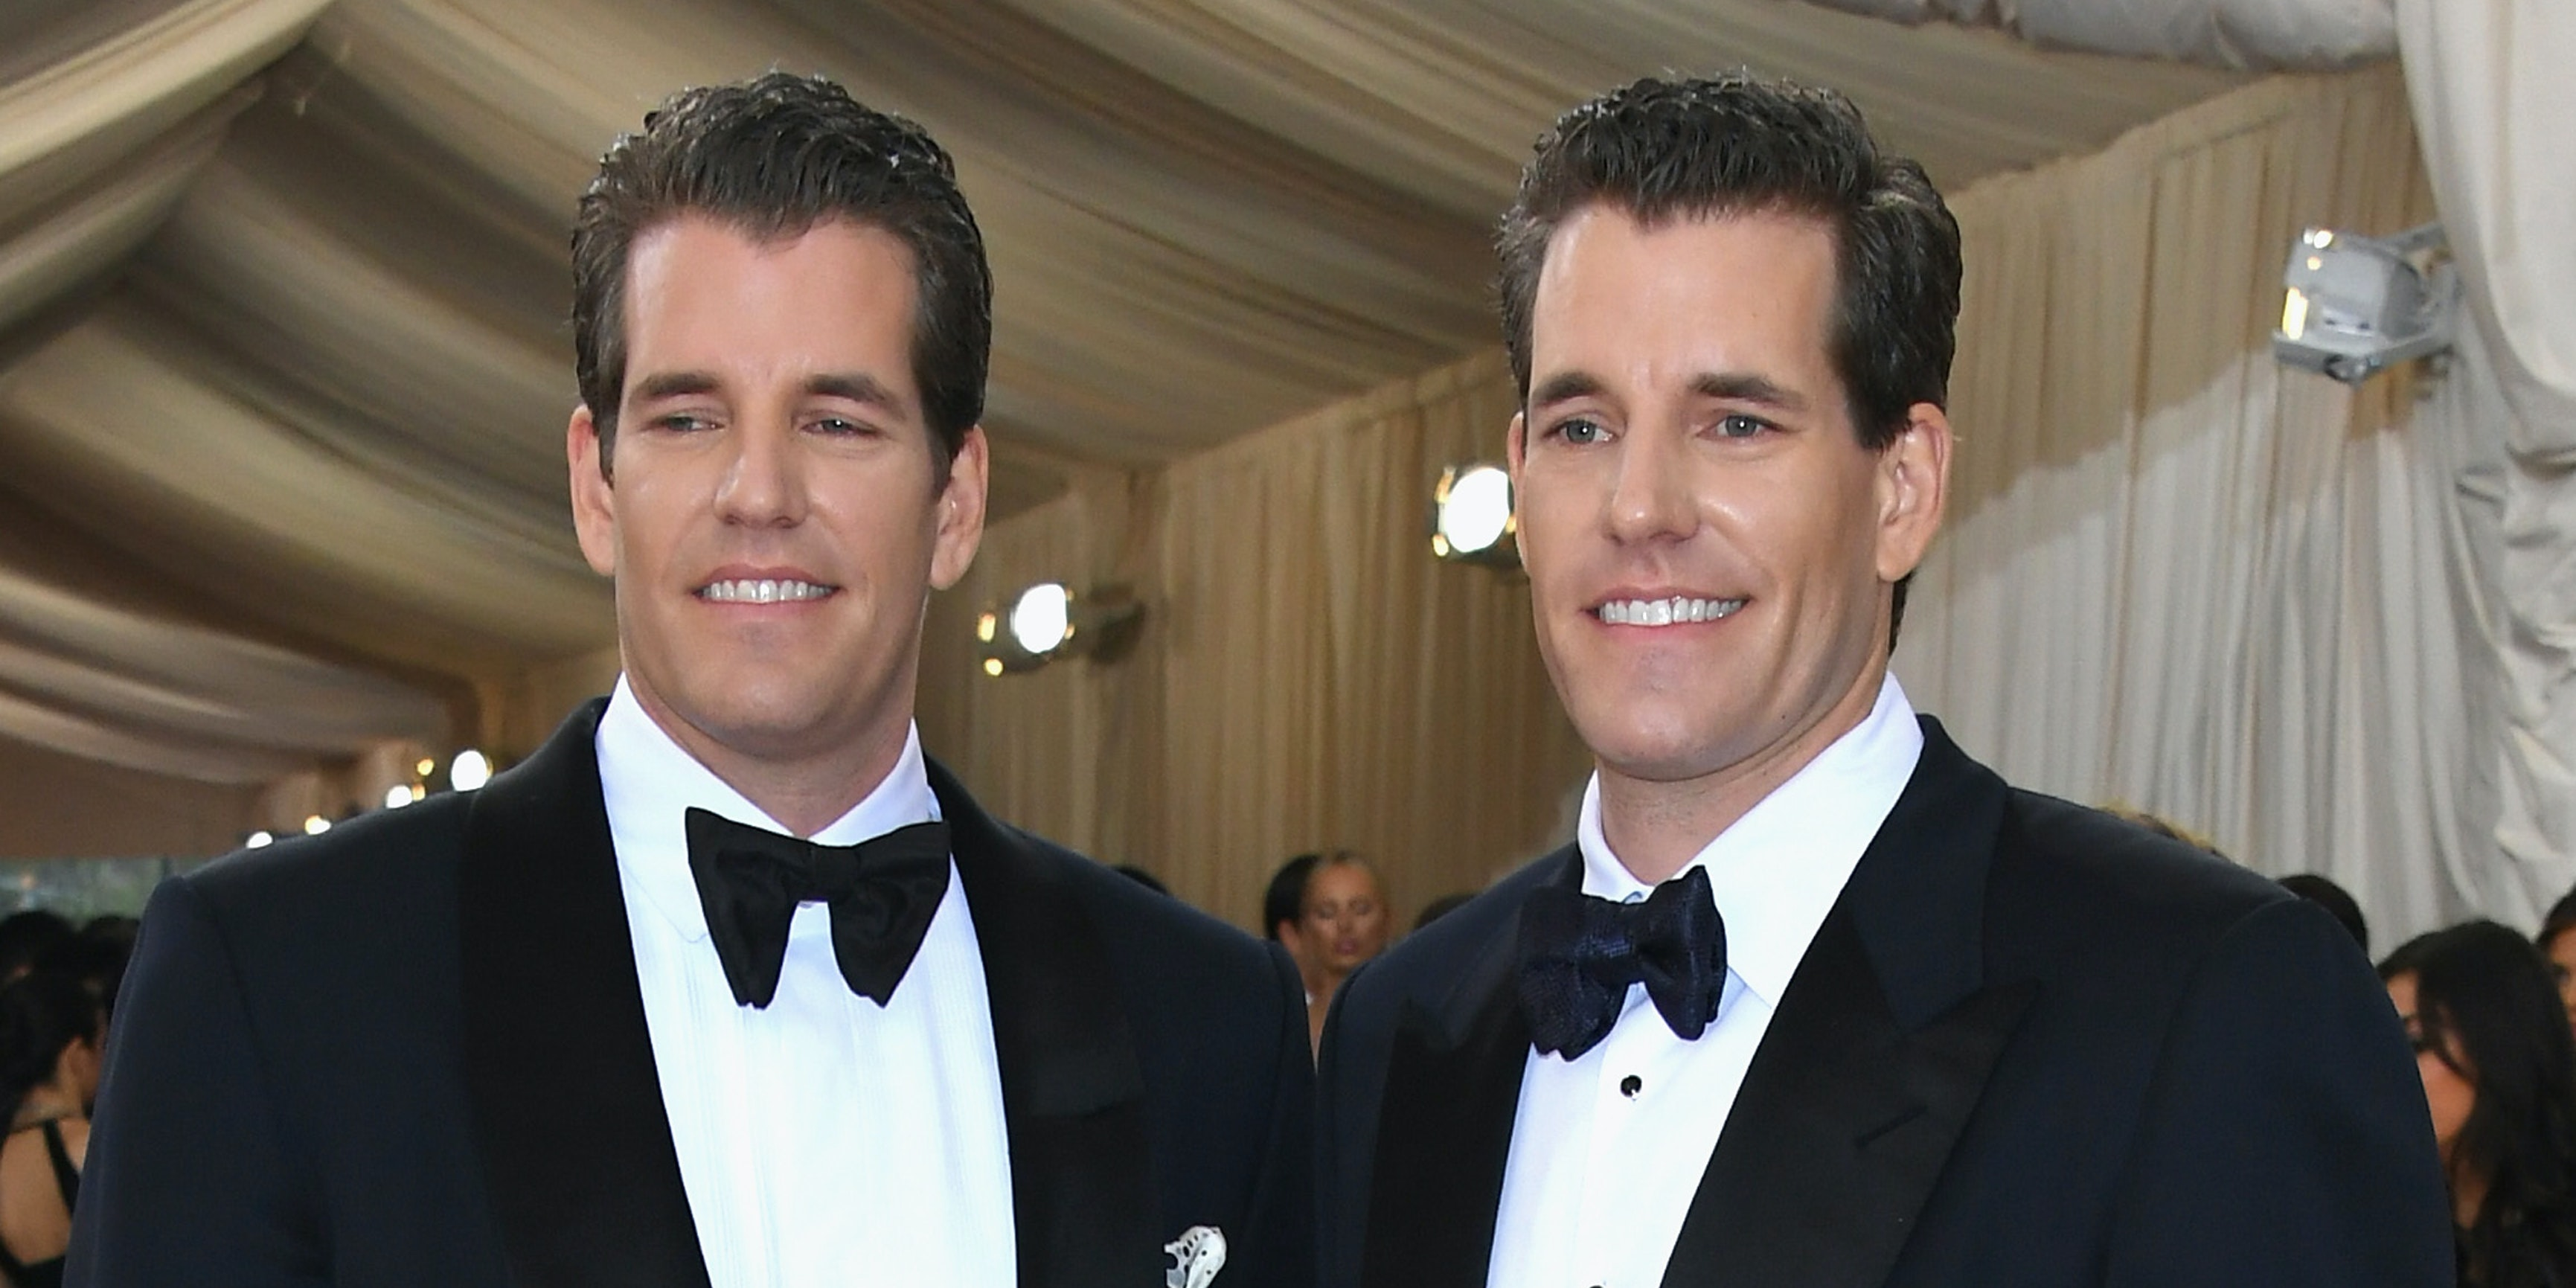 Winklevoss' Gemini Bitcoin Exchange Begins Trading Cryptocurrency Ether Today